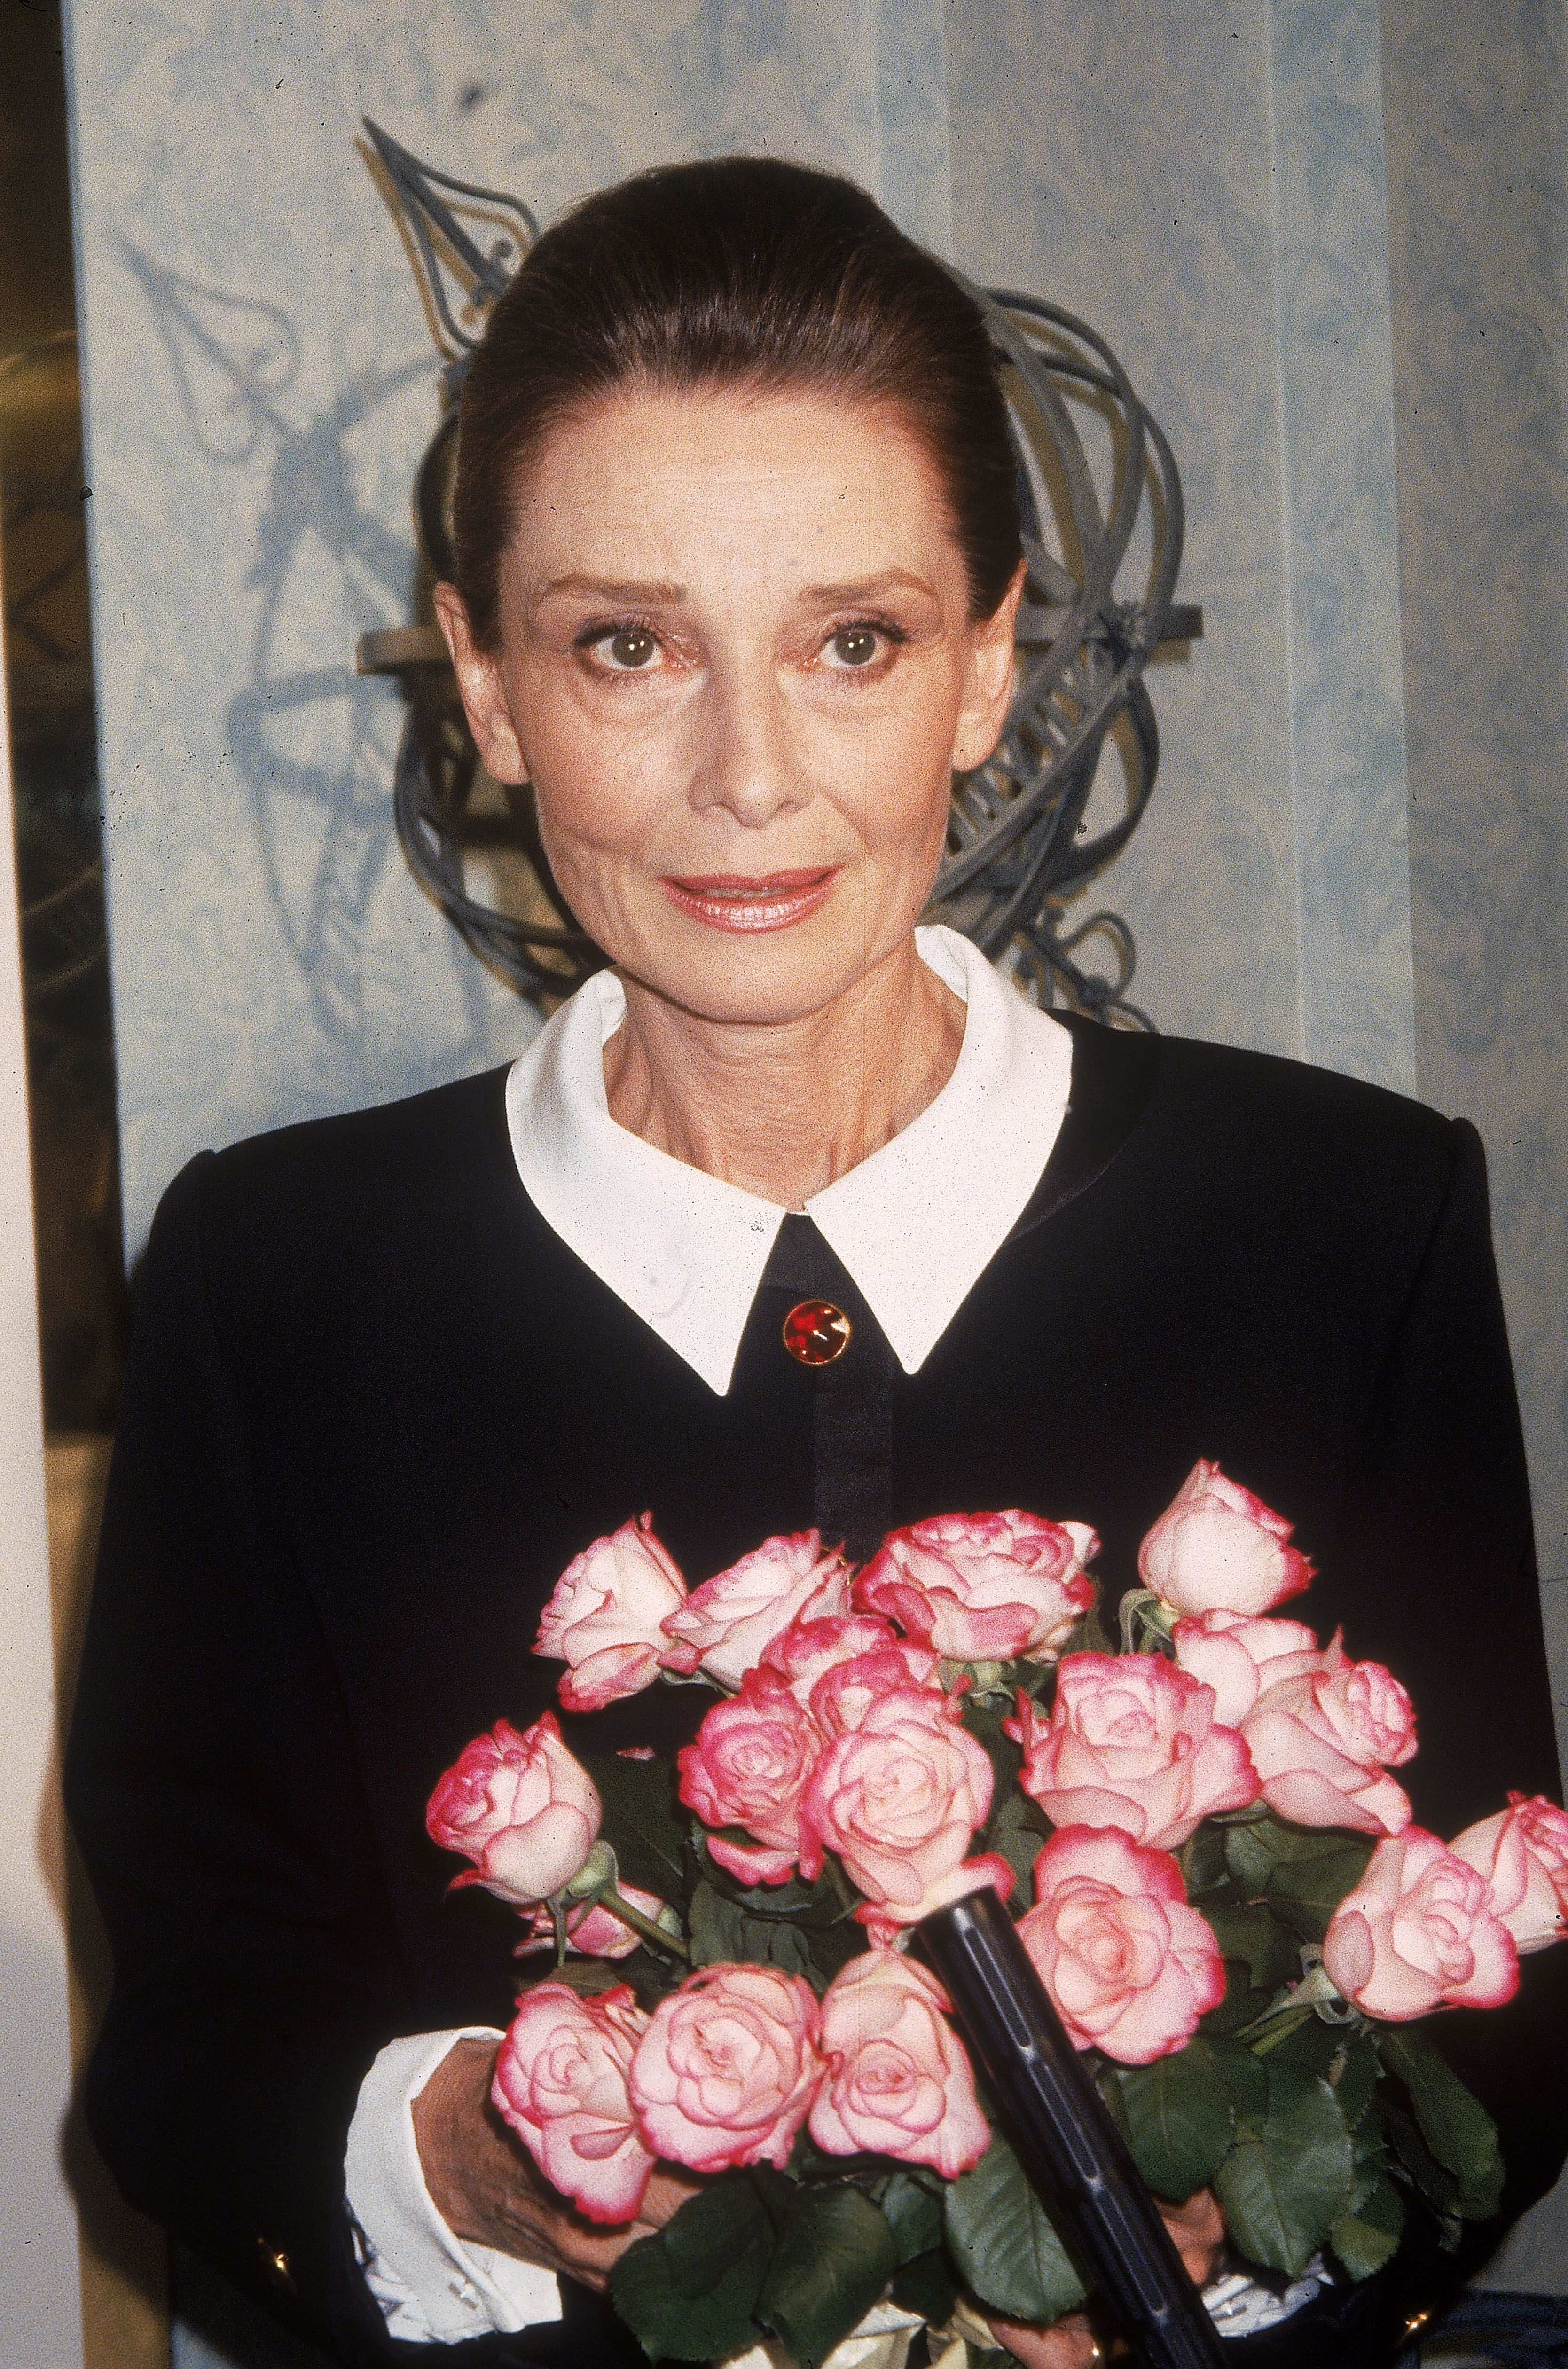 Audrey Hepburn poses with a bouquet of flowers, circa 1985. | Getty Images